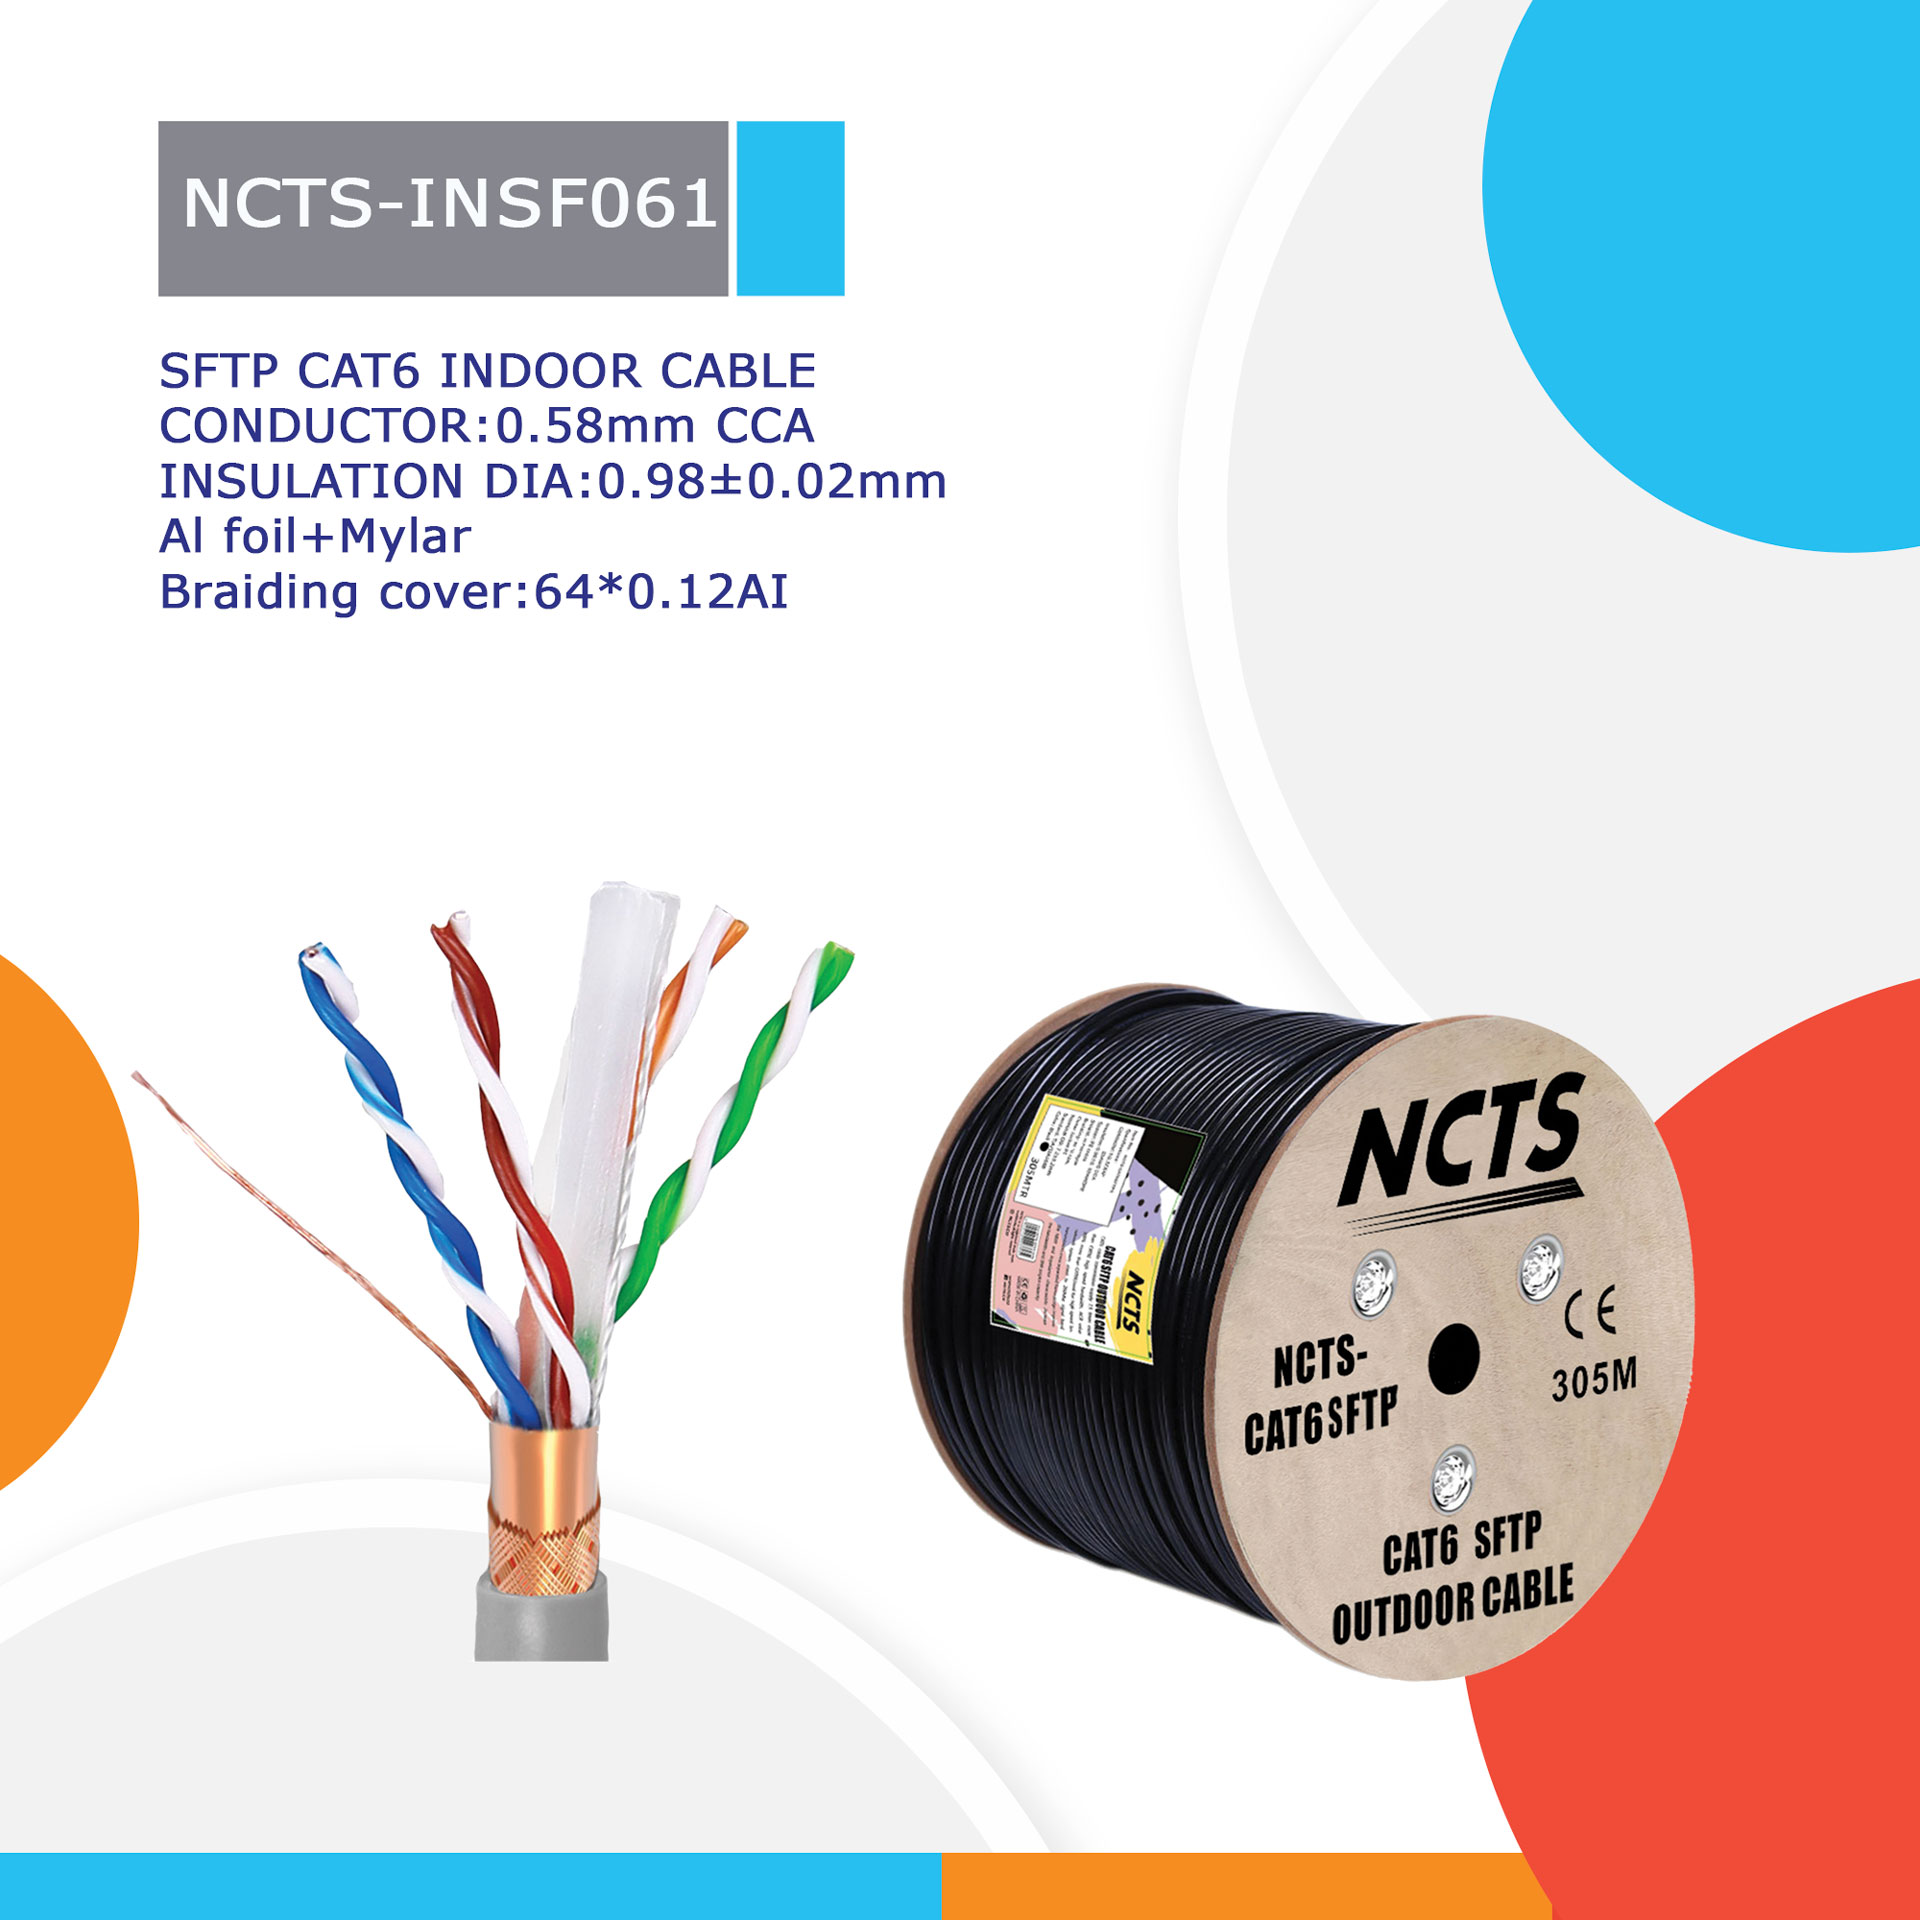 NCTS-INSF061